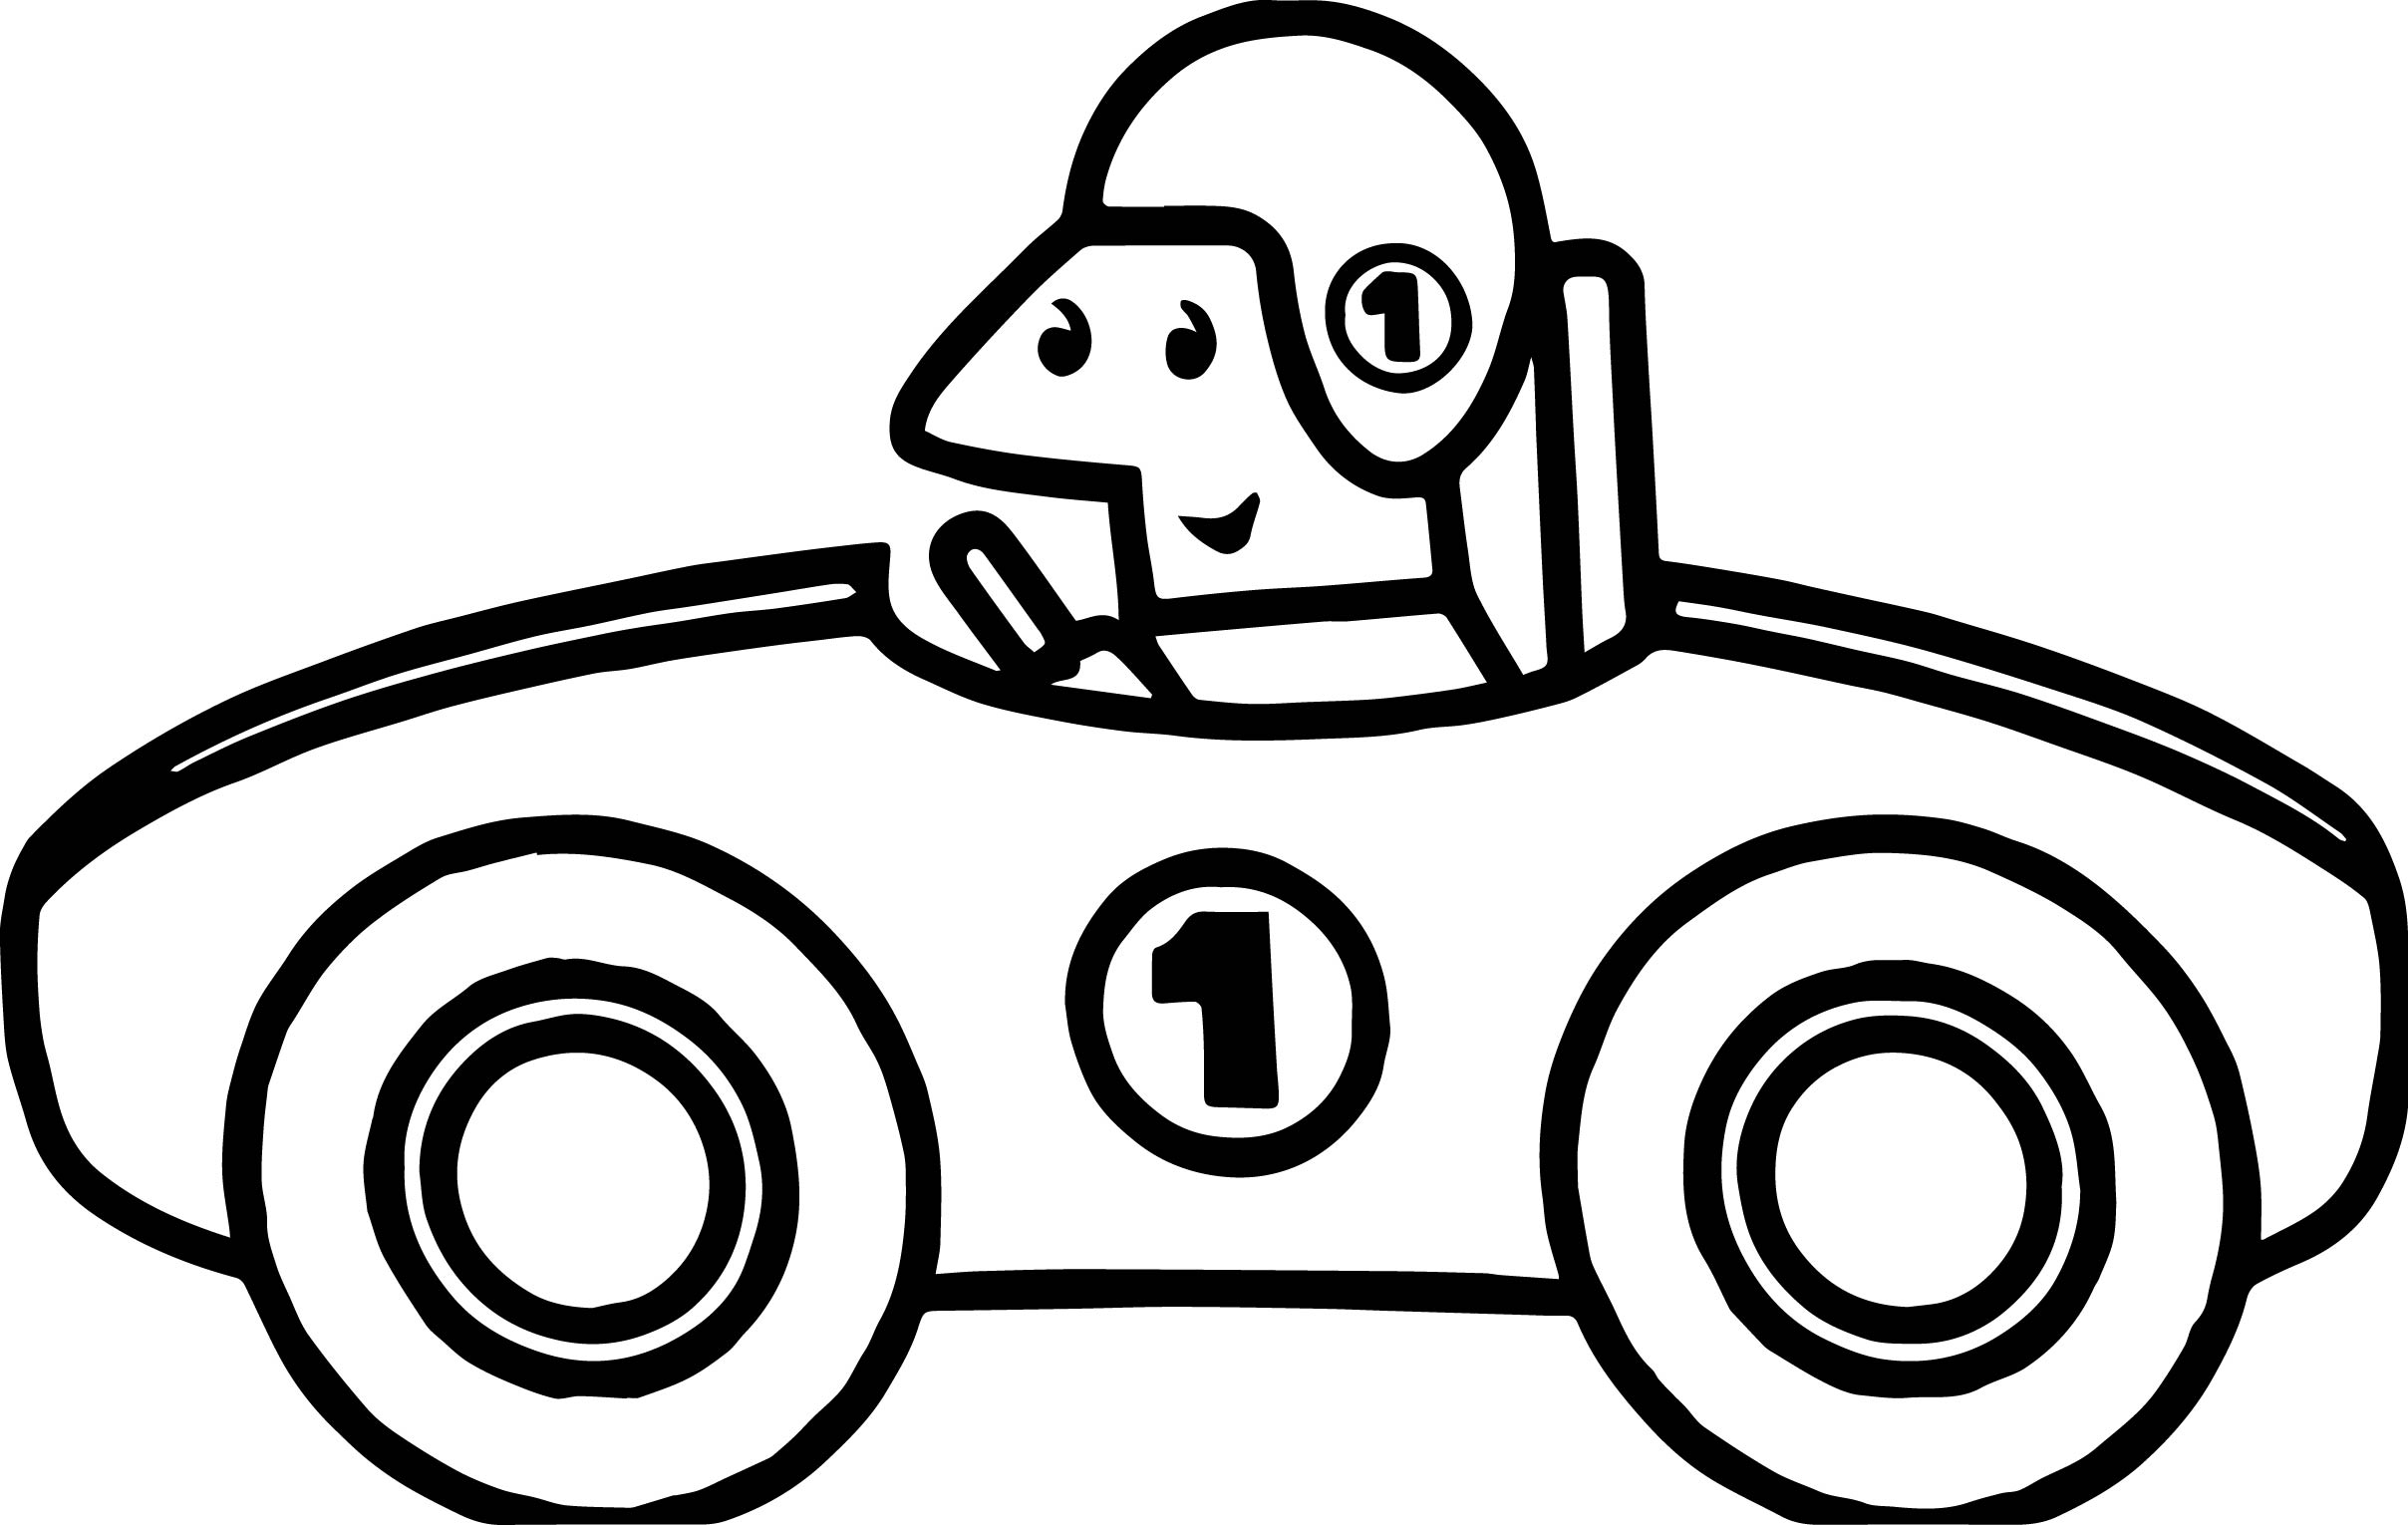 2416x1530 One Number Old Race Car Coloring Page Wecoloringpage